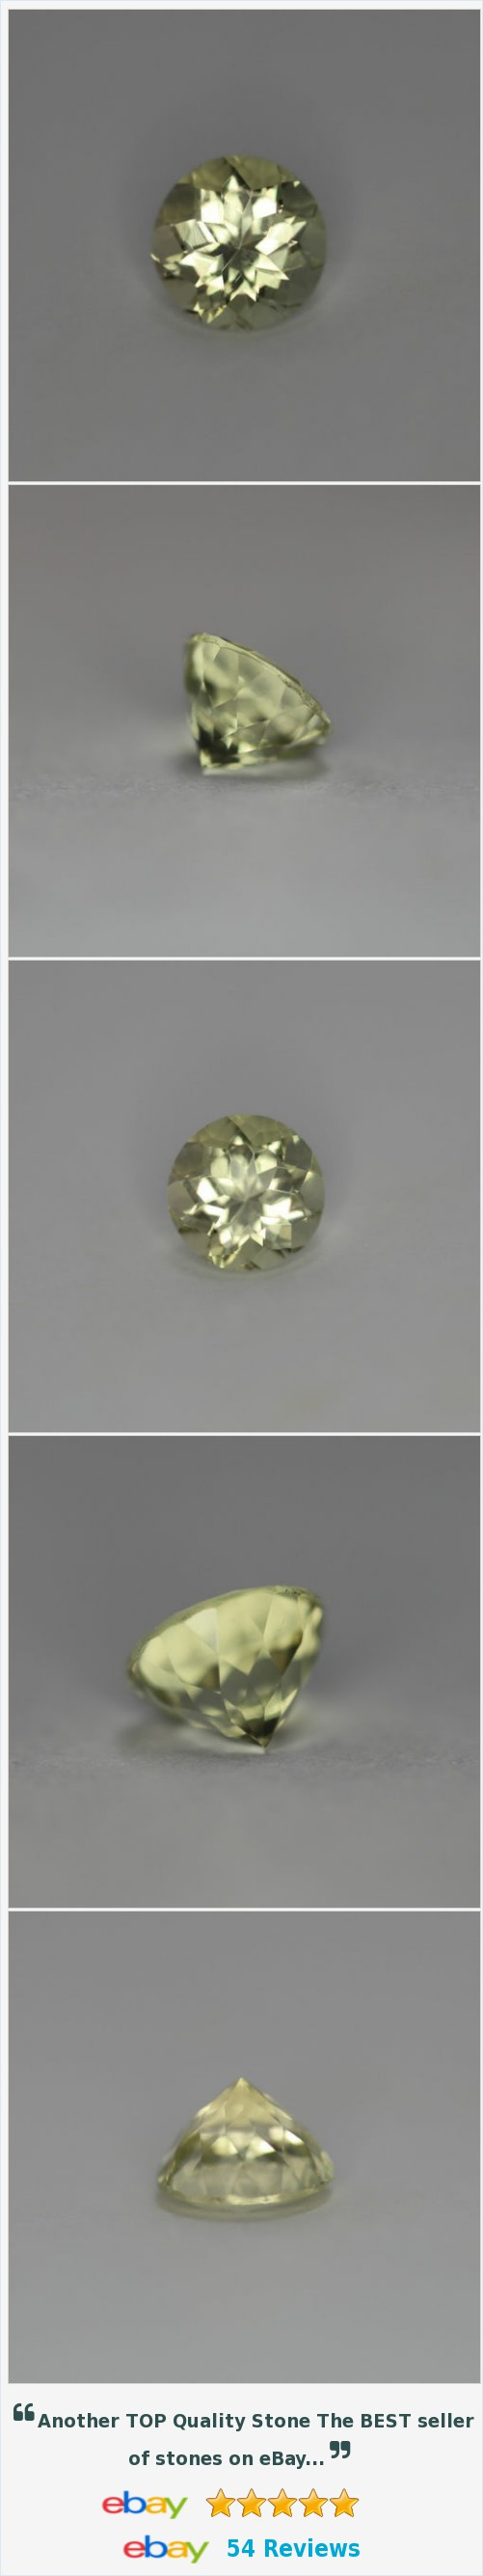 UNTREATED Namibian heliodor (yellow beryl) 1.27 cts WITH VIDEO http://www.ebay.com/itm/UNTREATED-Namibian-heliodor-yellow-beryl-1-27-cts-WITH-VIDEO-/162217554199?ssPageName=STRK:MESE:IT